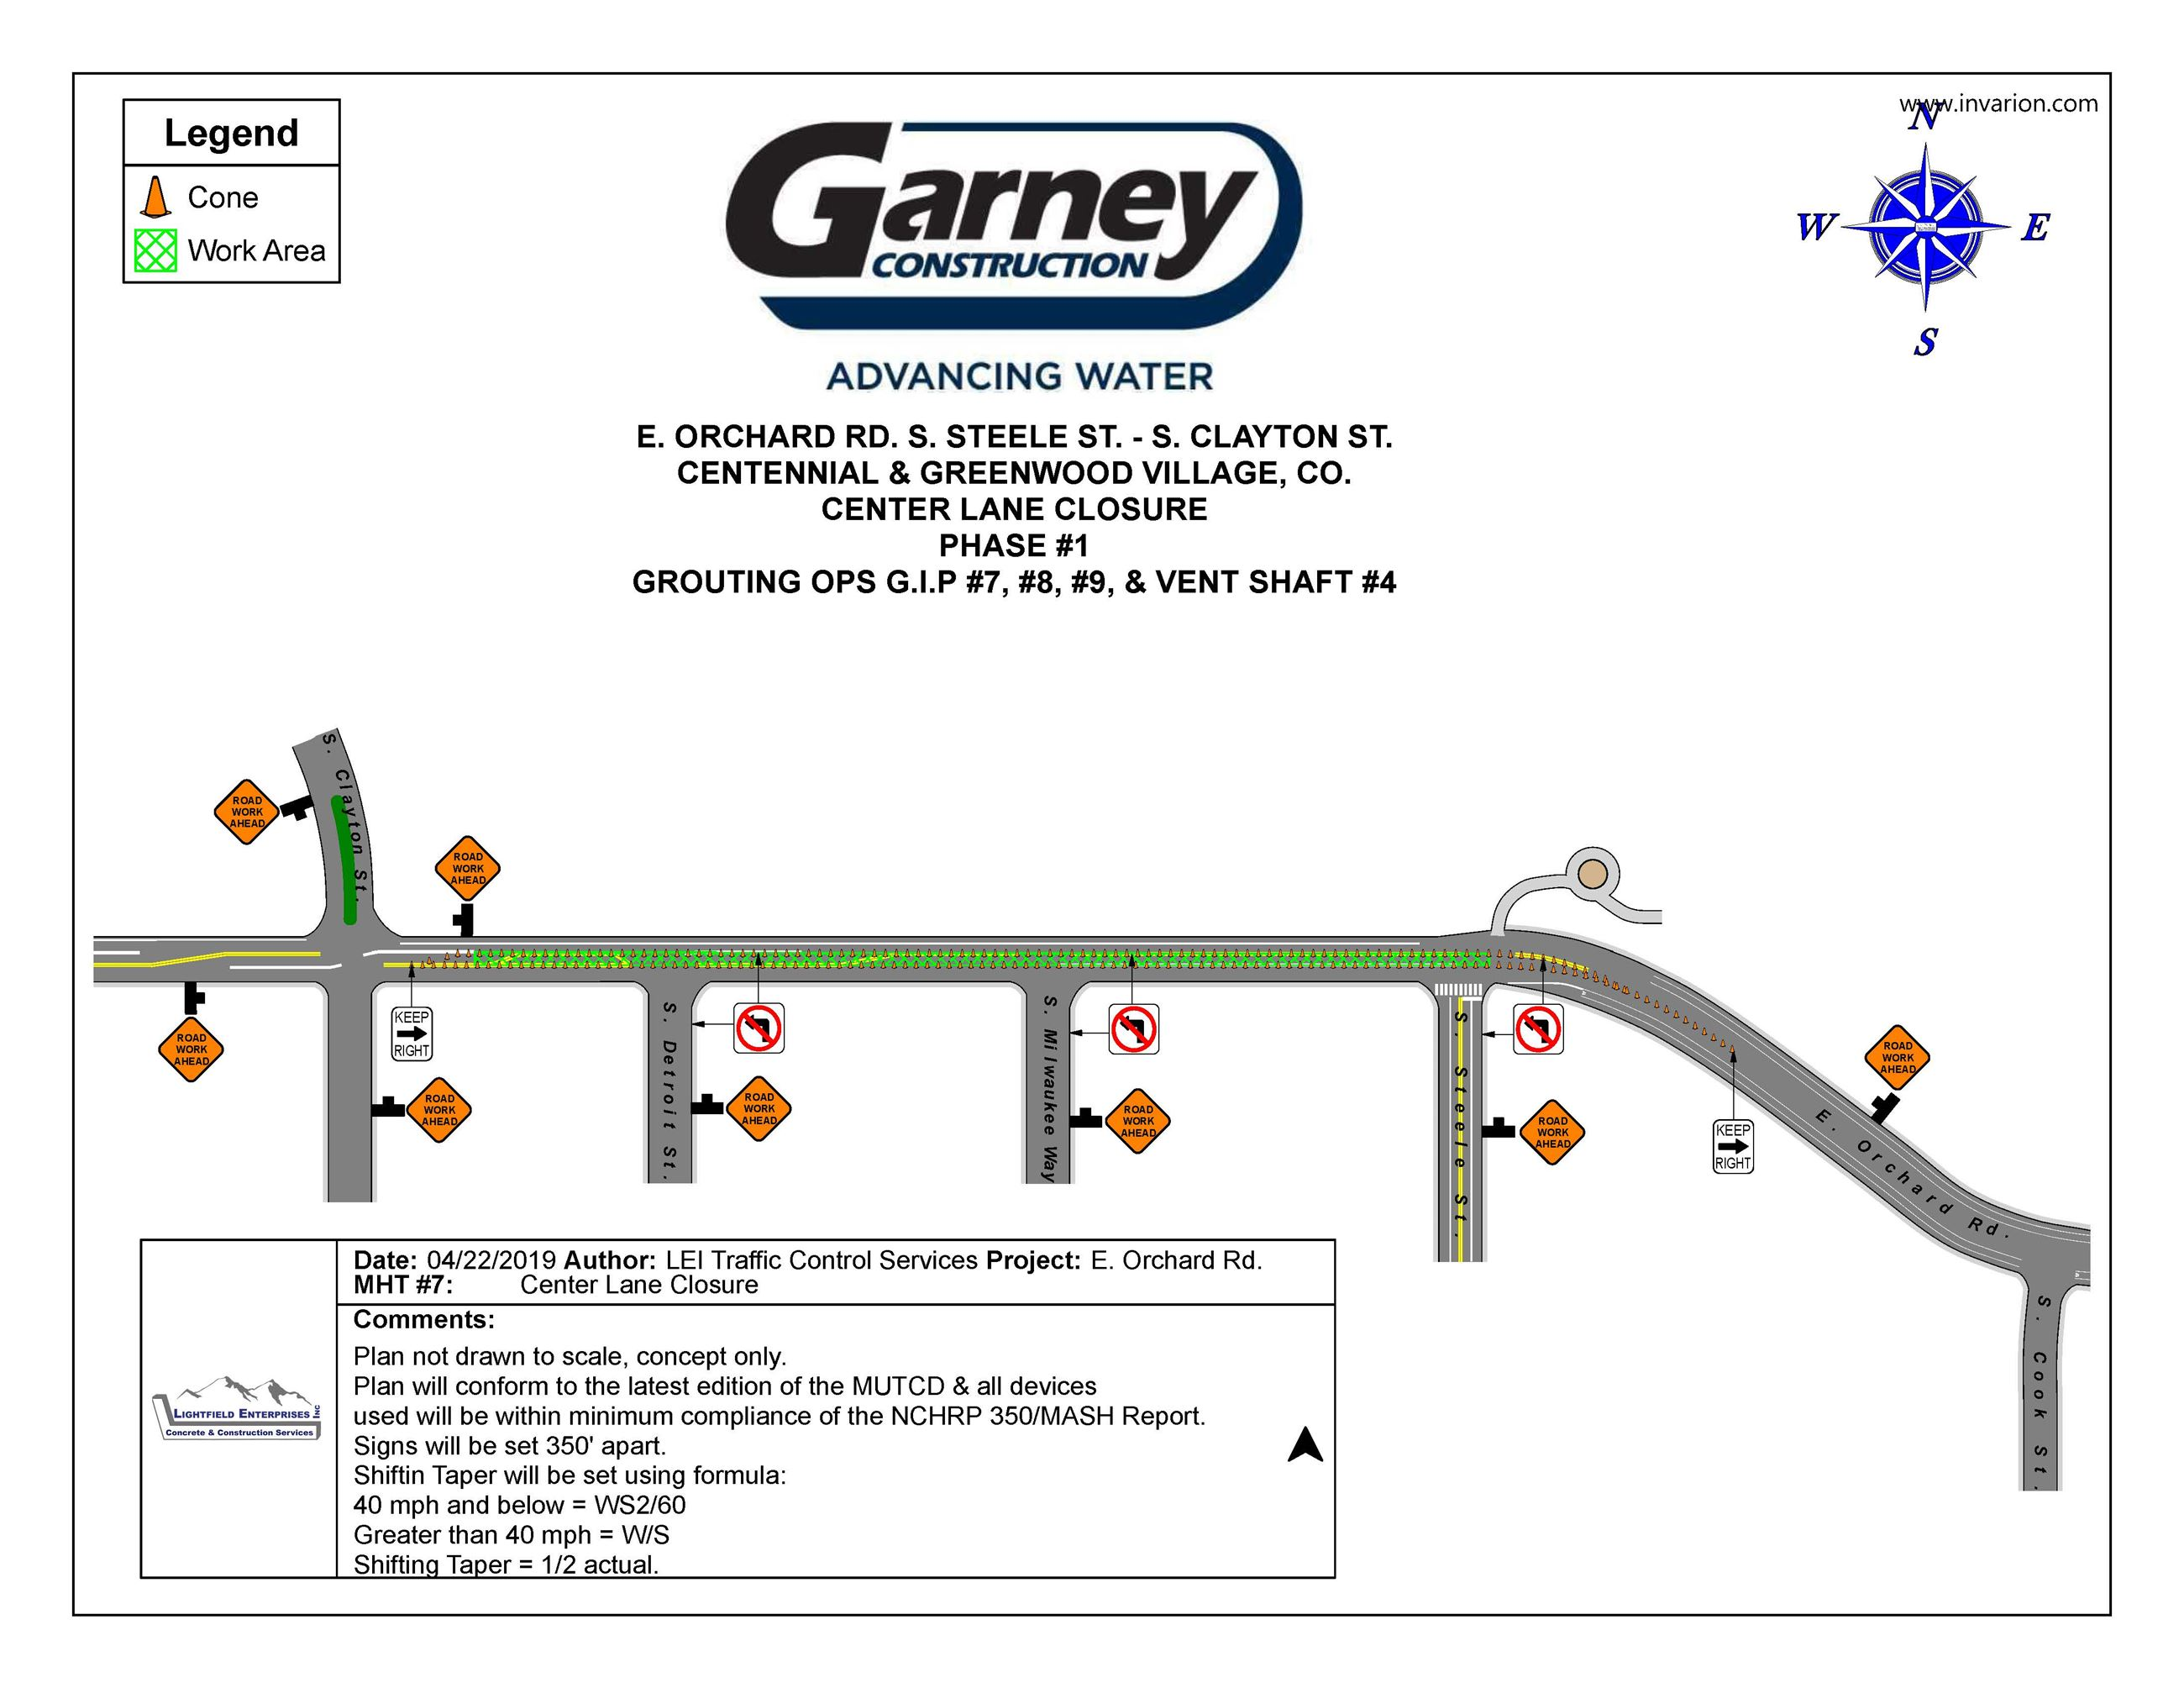 GARNEY COLSMAN TUNNEL PH 1 CLCA MHT 7